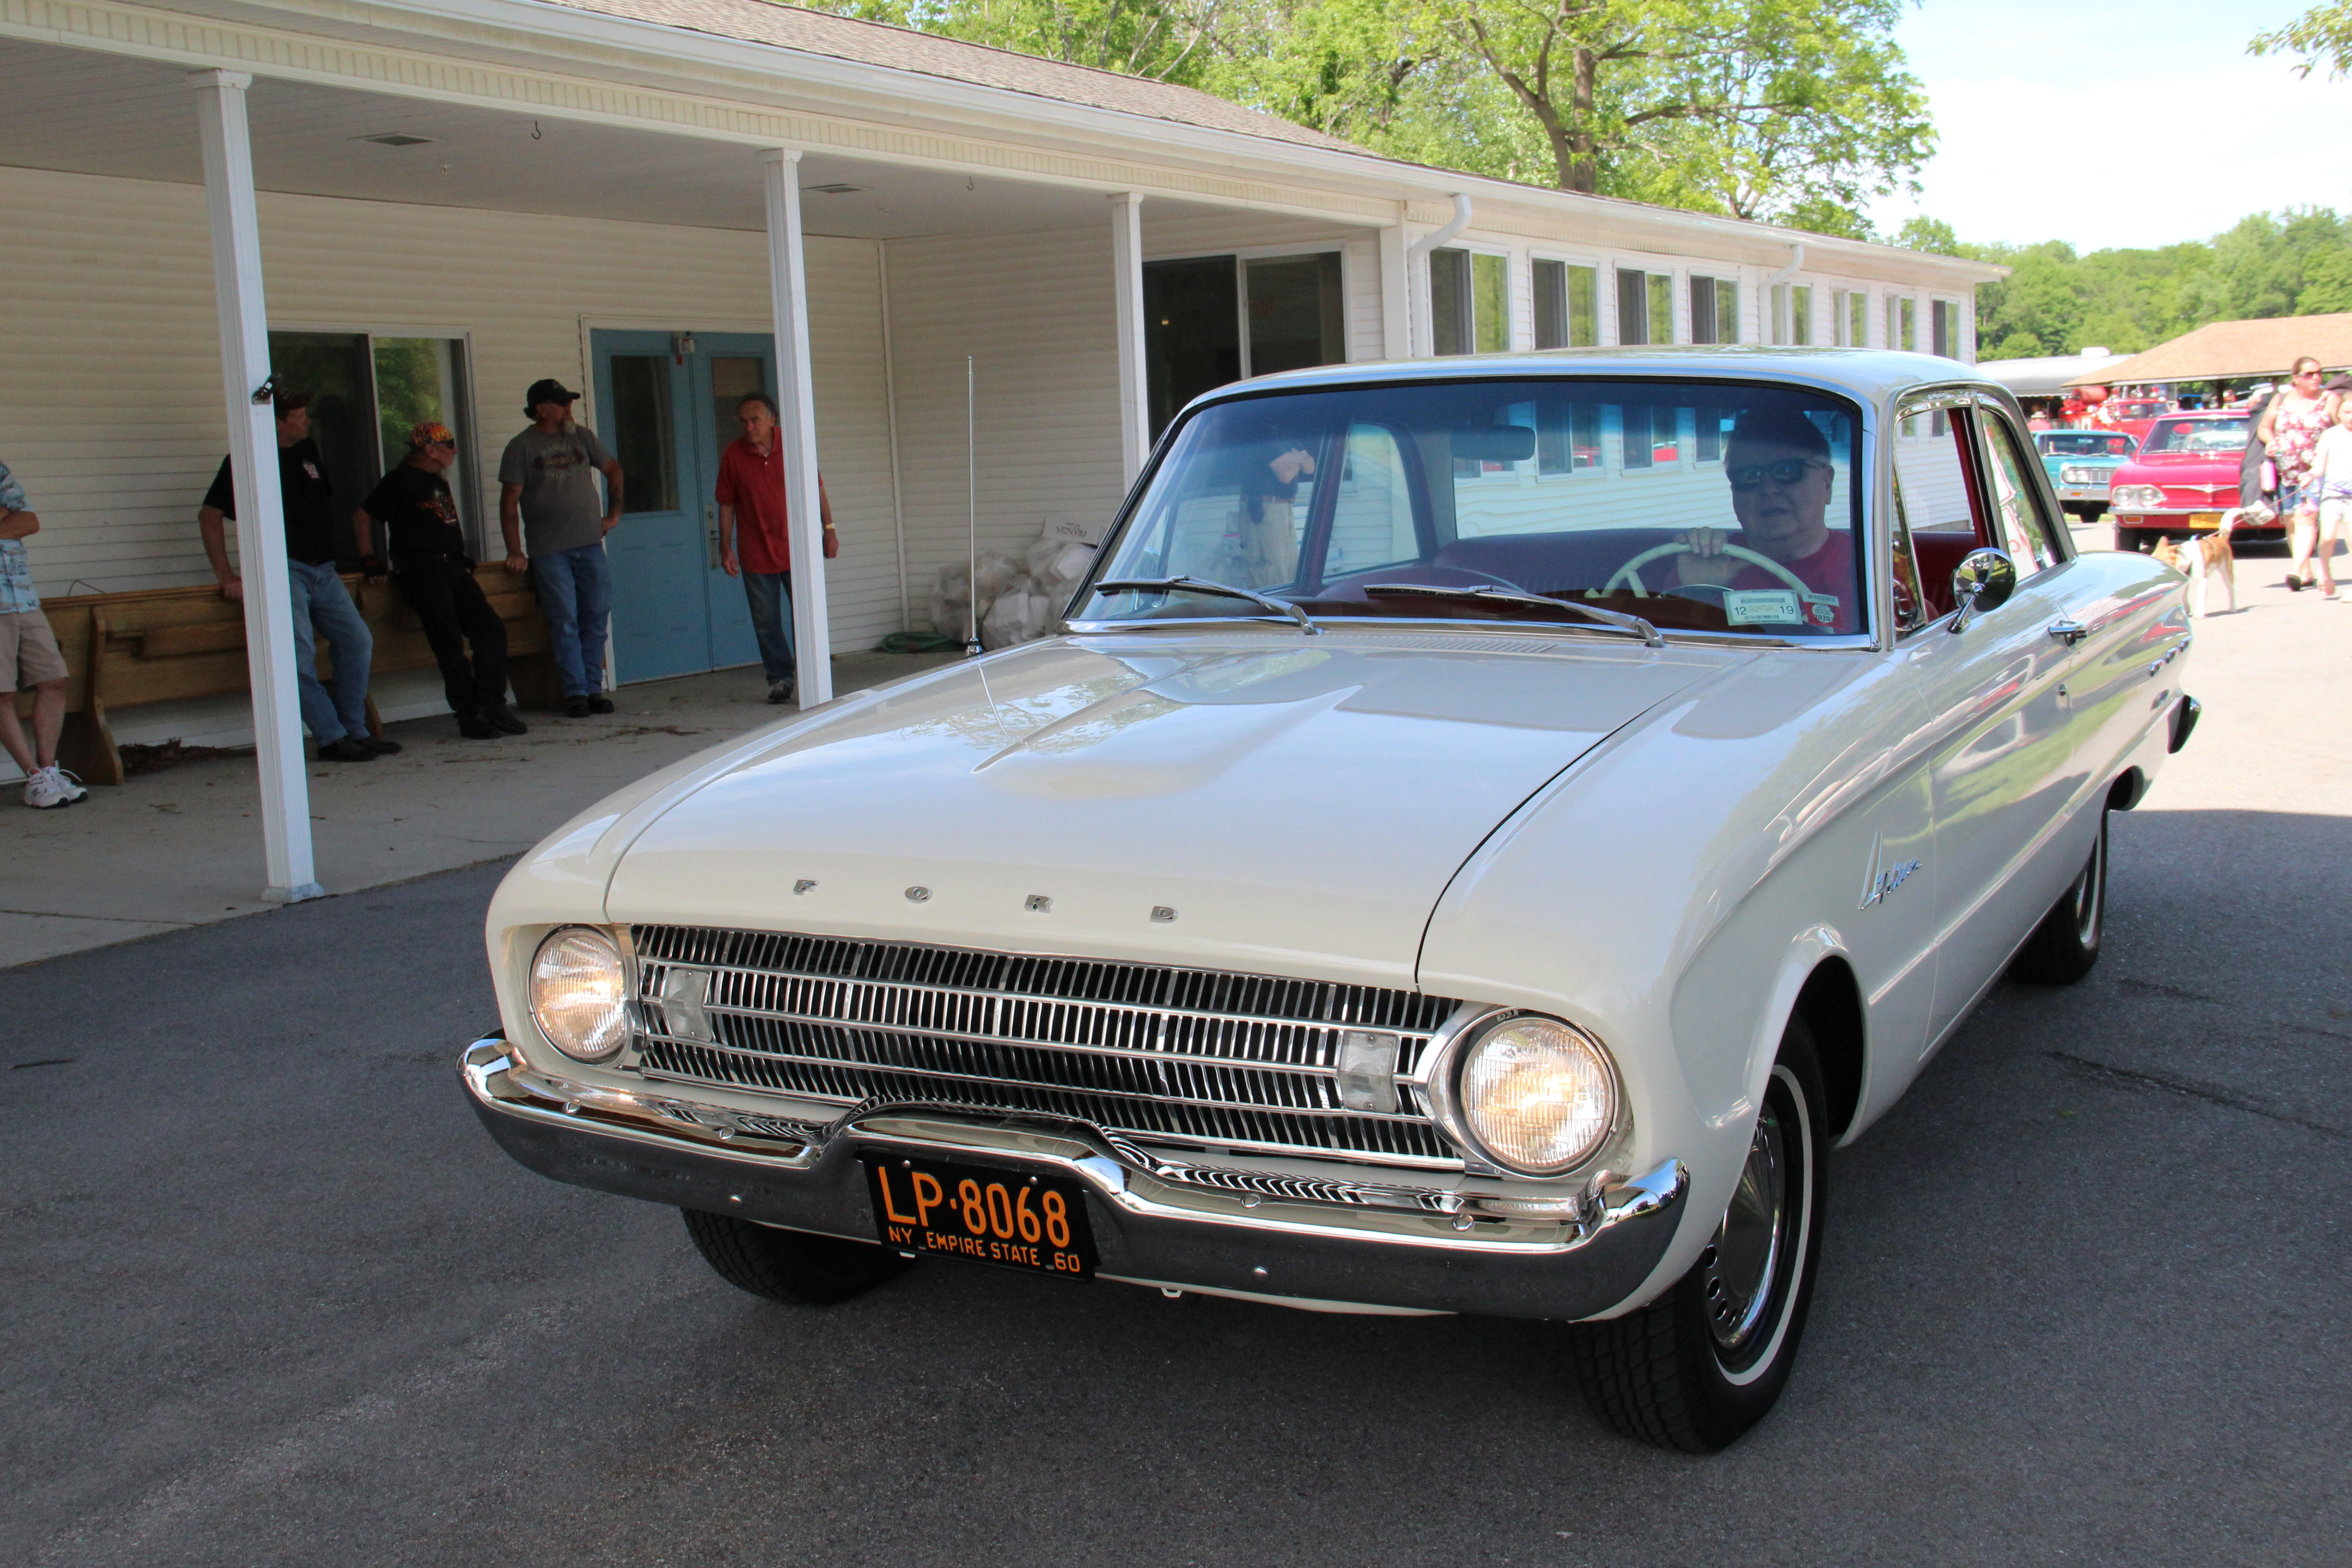 IMG_0744-Class-6-3rd-Dale-Sally-Pyne-1961-Ford-Felcon-Futura